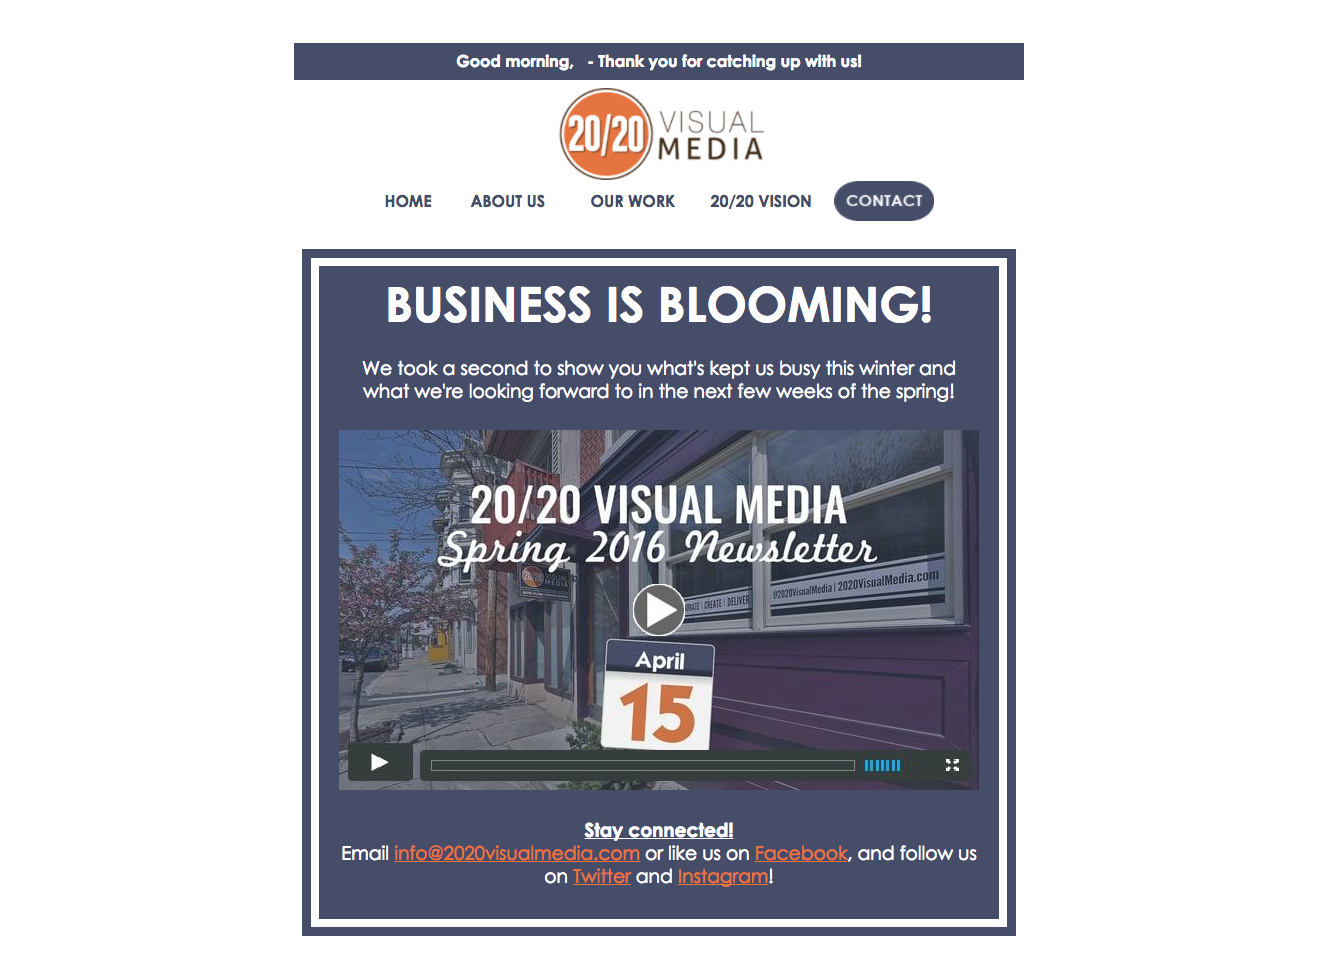 We've used video in our email newsletter for the past two years.  Our own click through rates rose by 75%.